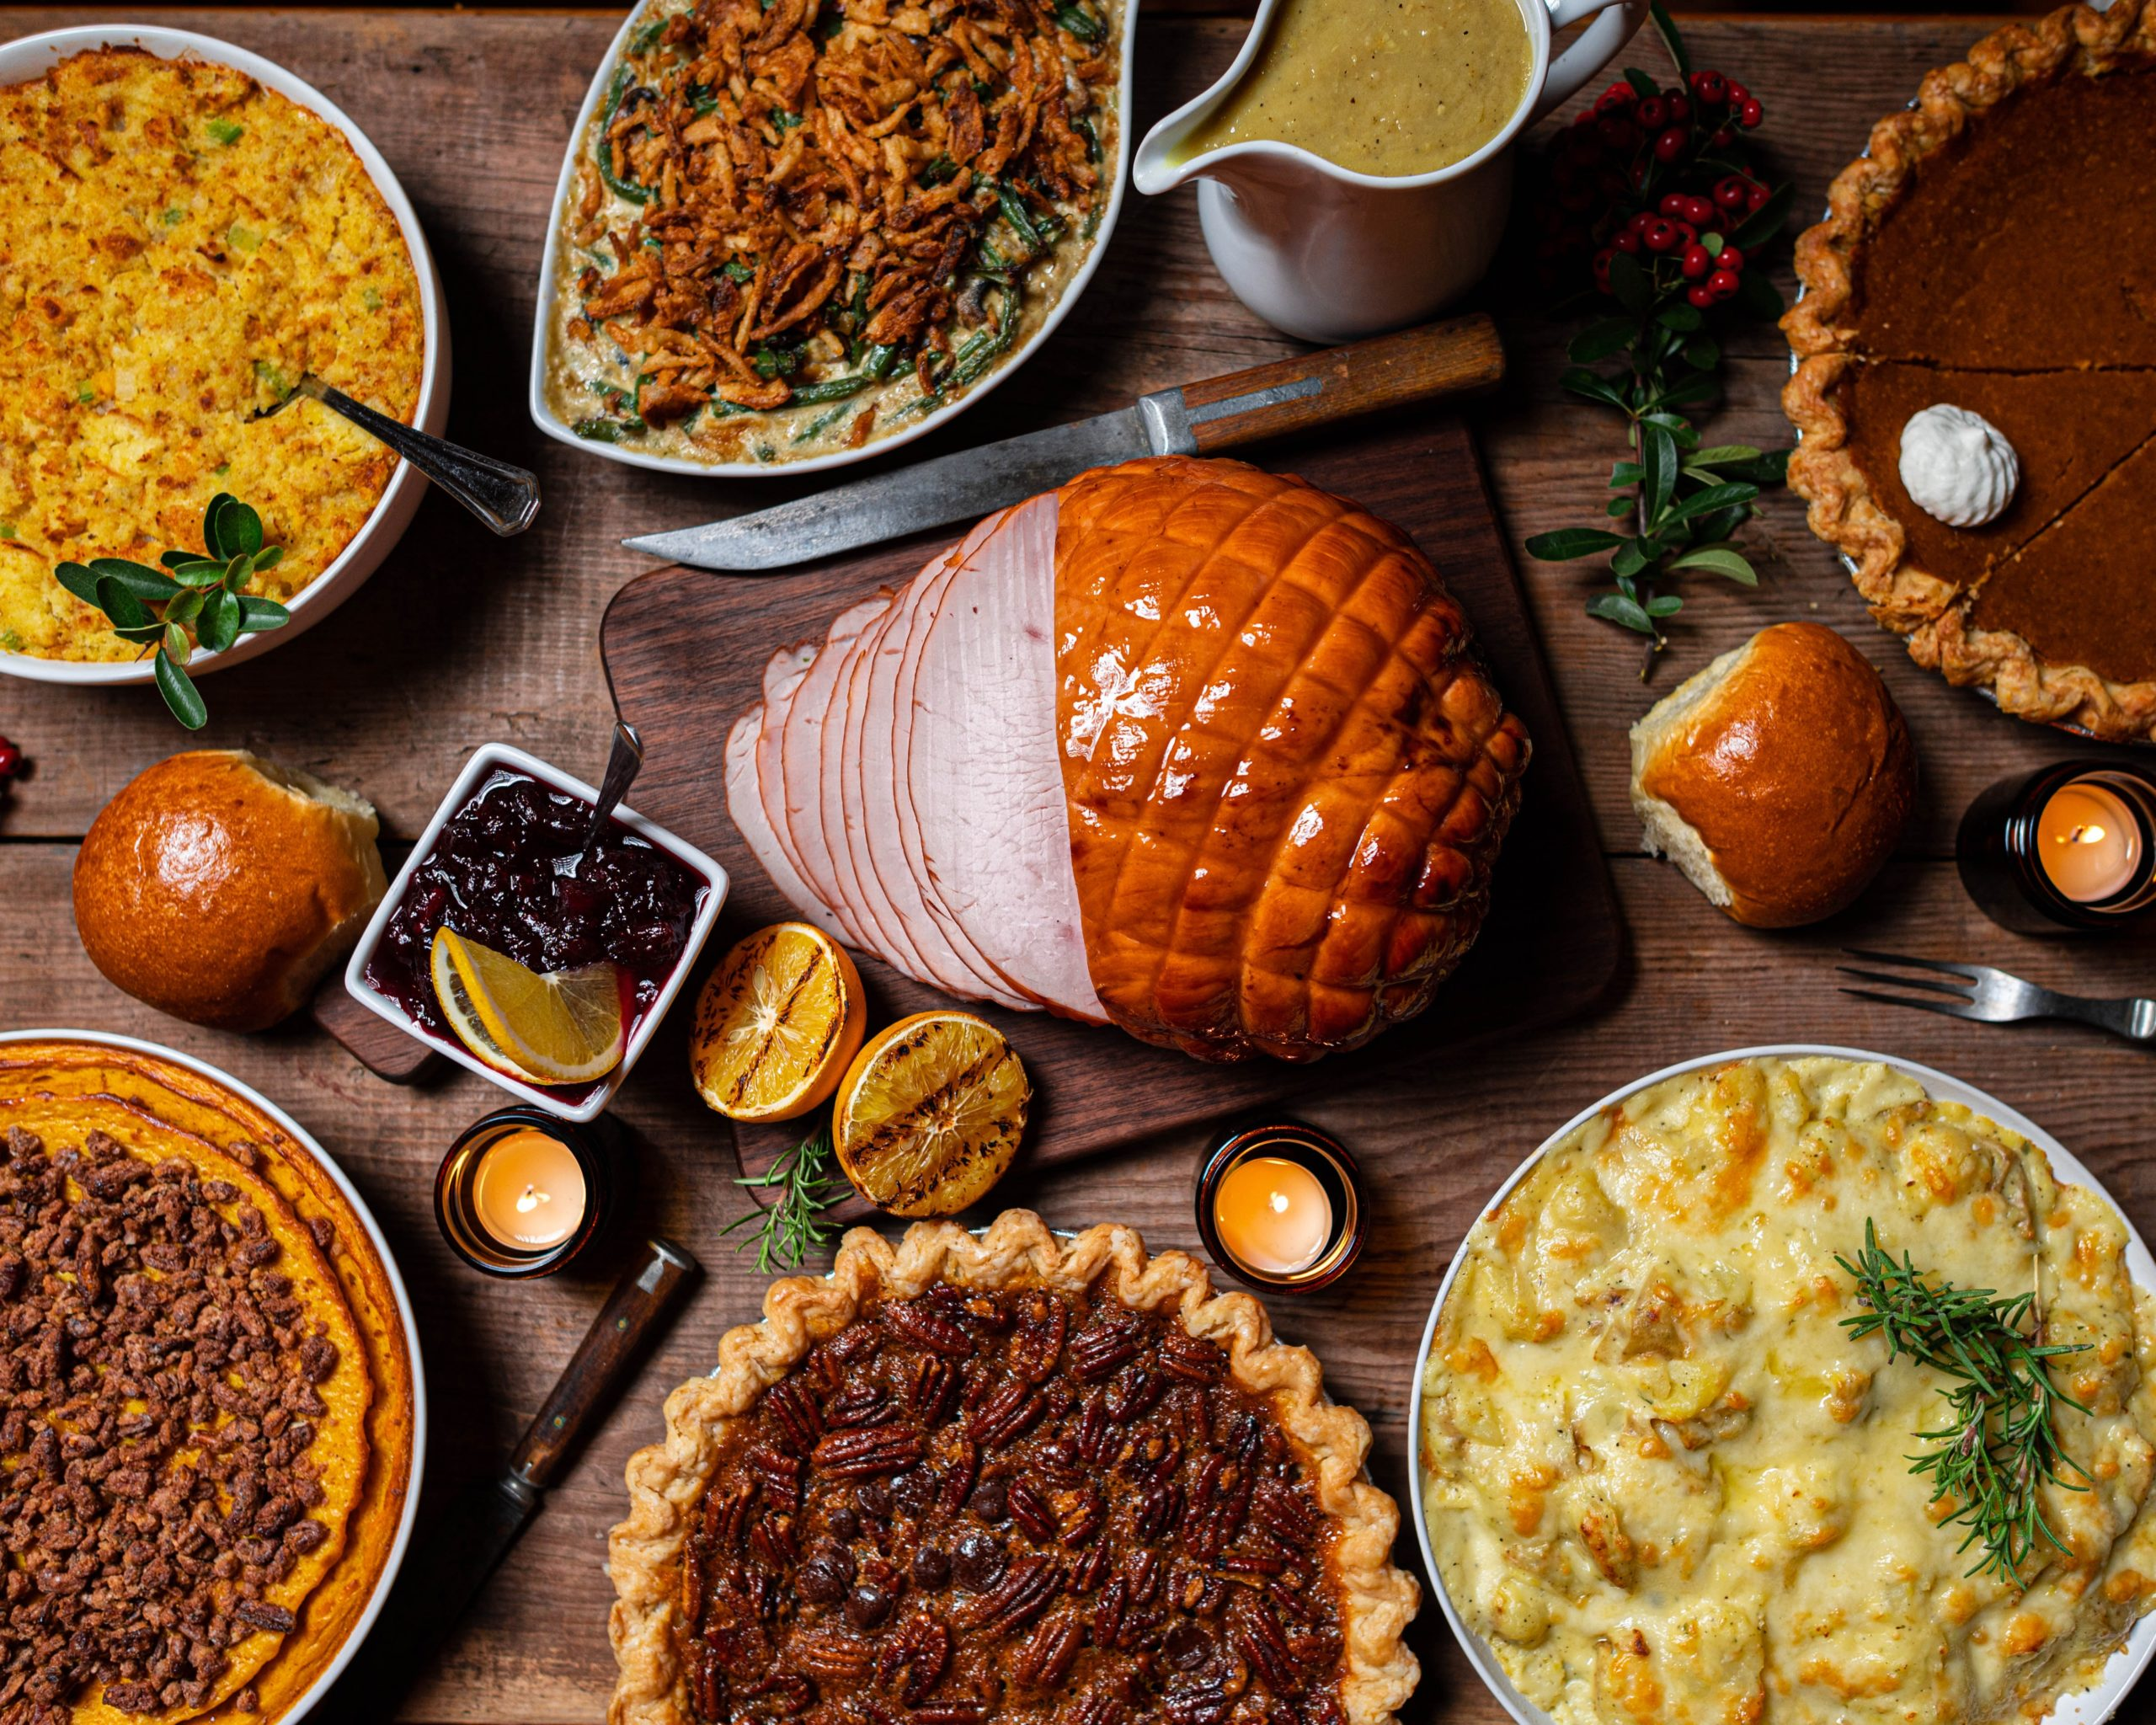 how to avoid overeating during holidays